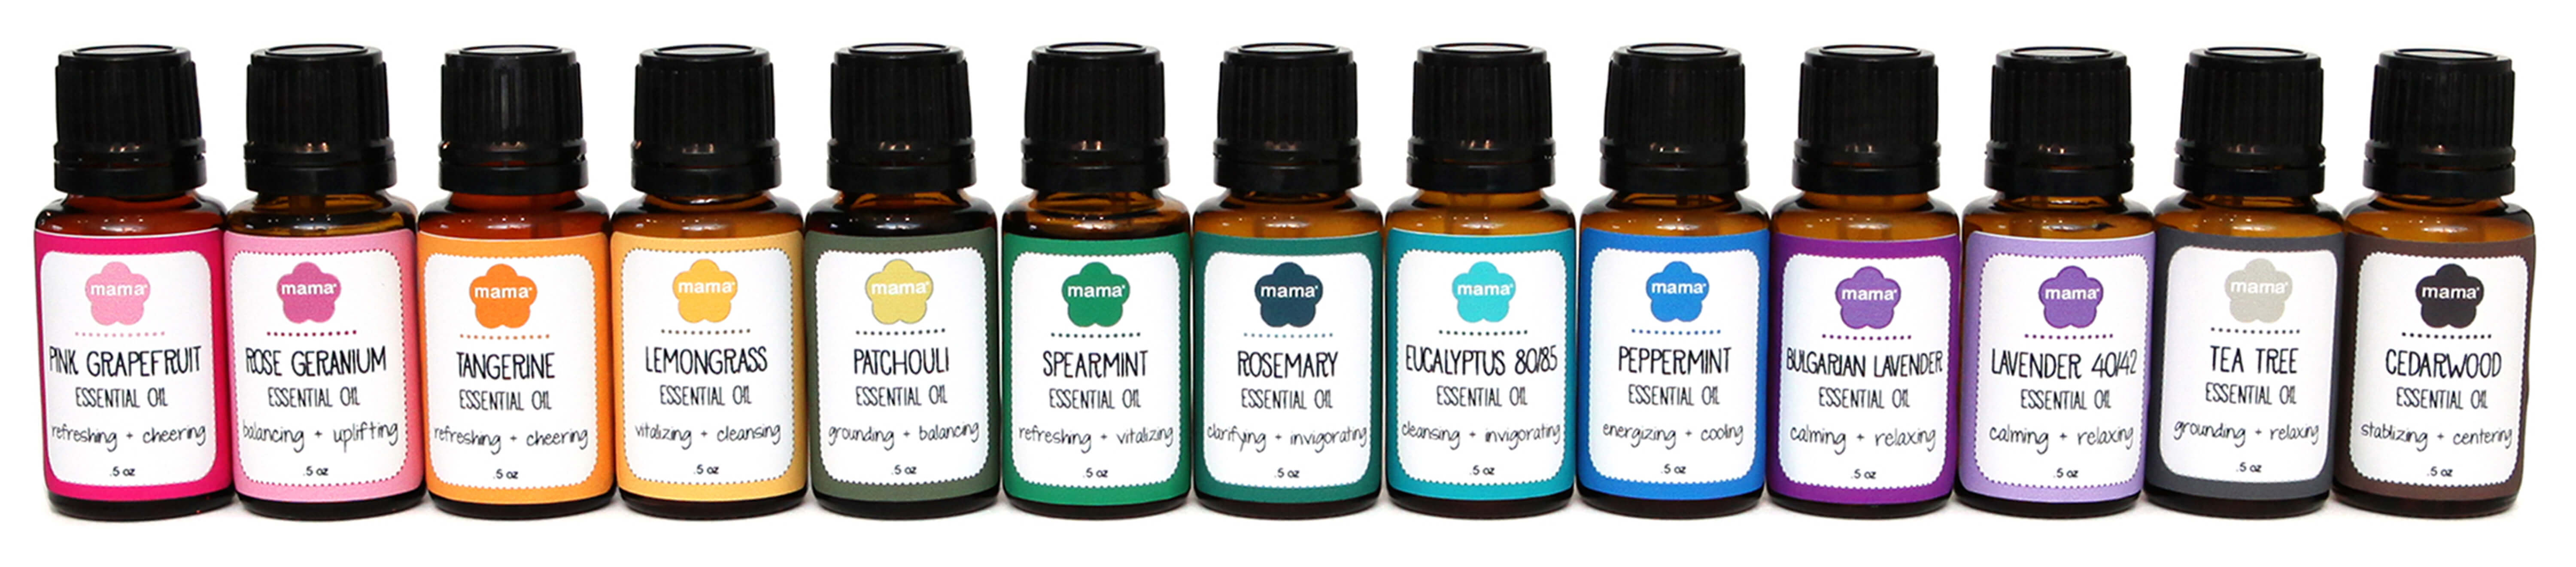 essential-oil-main.jpg